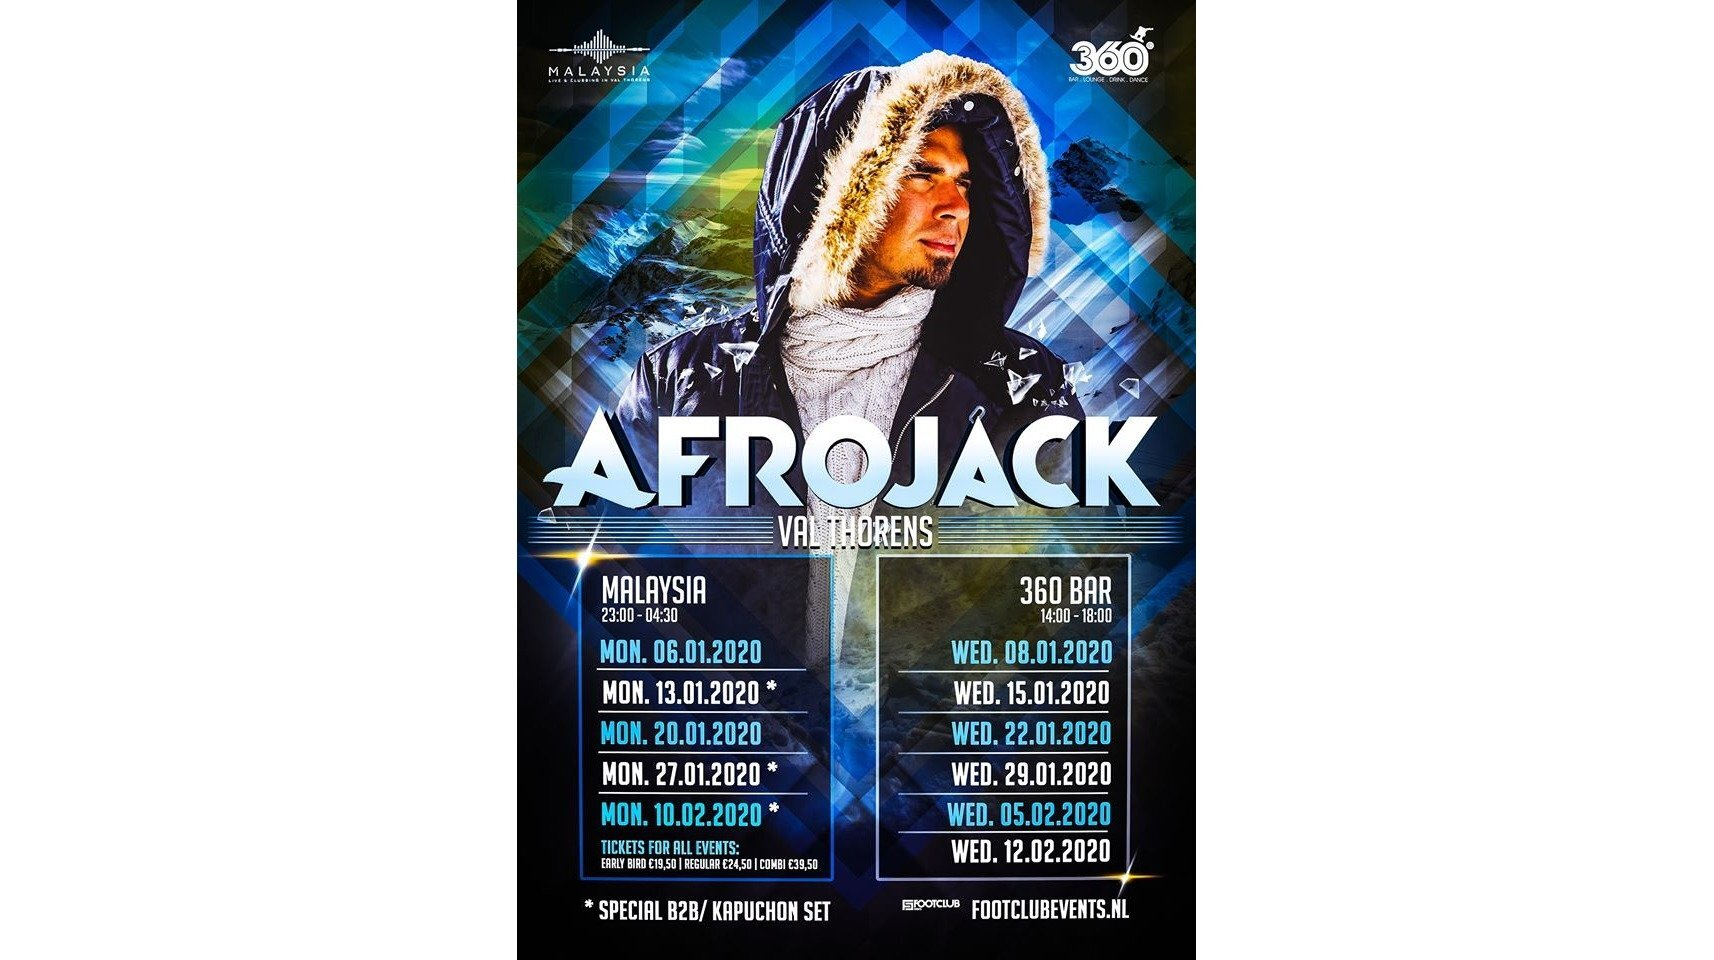 Afrojack in Concert at Le Malaysia & 360 Bar, Val Thorens